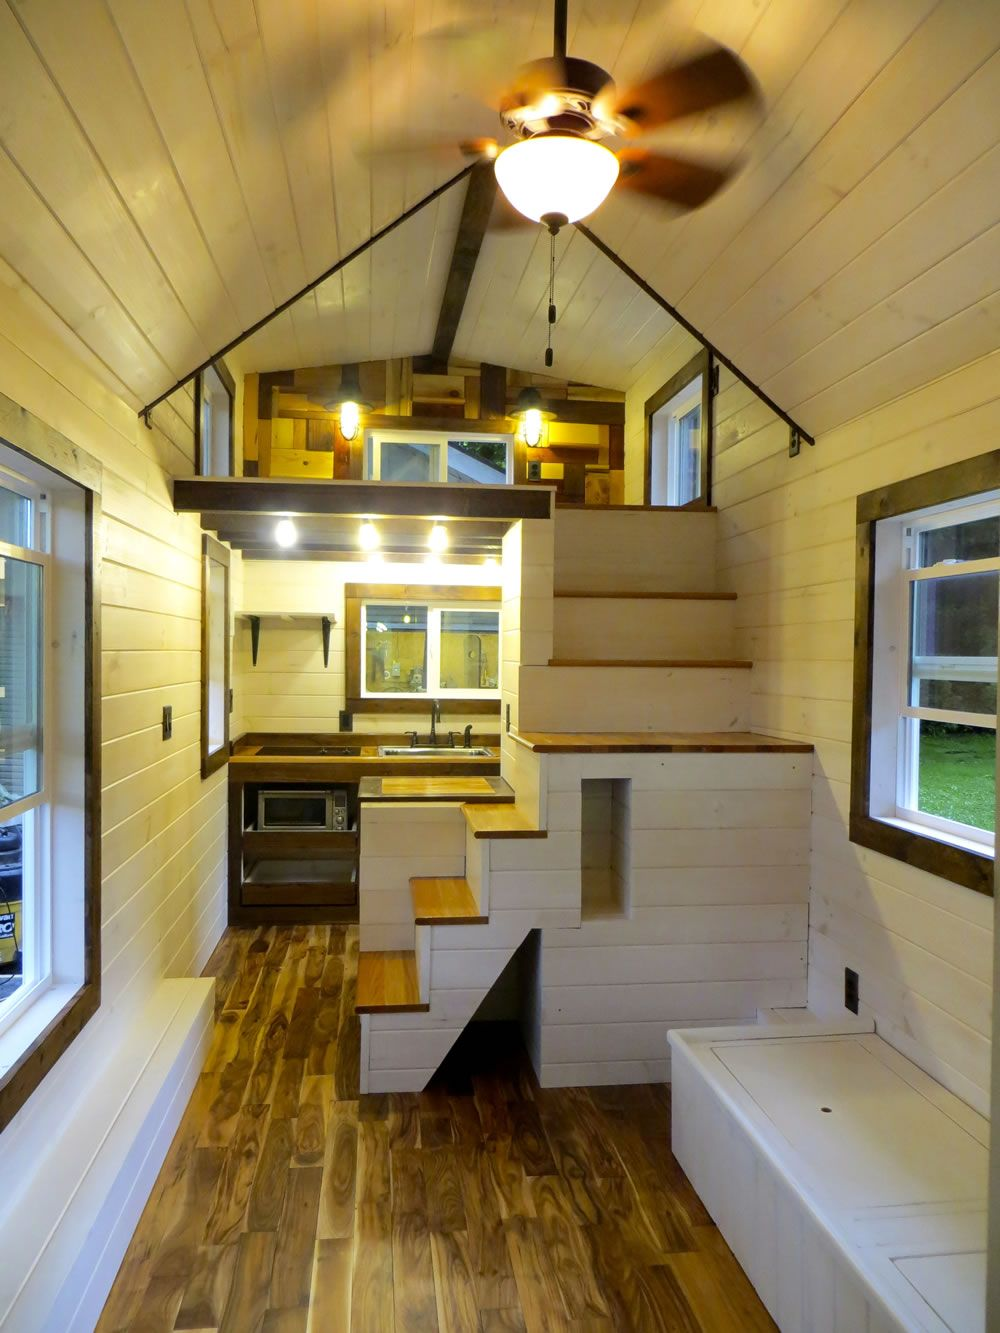 6 Tiny House Plan Designs Around The World [JOIN THE MOVEMENT ... Tiny Home Design on tiny houses wisconsin, tiny texas houses, tiny home, room design, tiny cottages with porches, cottage design, tiny victorian houses, tiny cottages and sheds, tiny mountain houses, swimming pool design, tiny houses in mn, architecture design, tiny houses built, shed design, tiny cottages on wheels, garage design, green design, tiny houses and cottages, tiny houses in america, bathroom design,